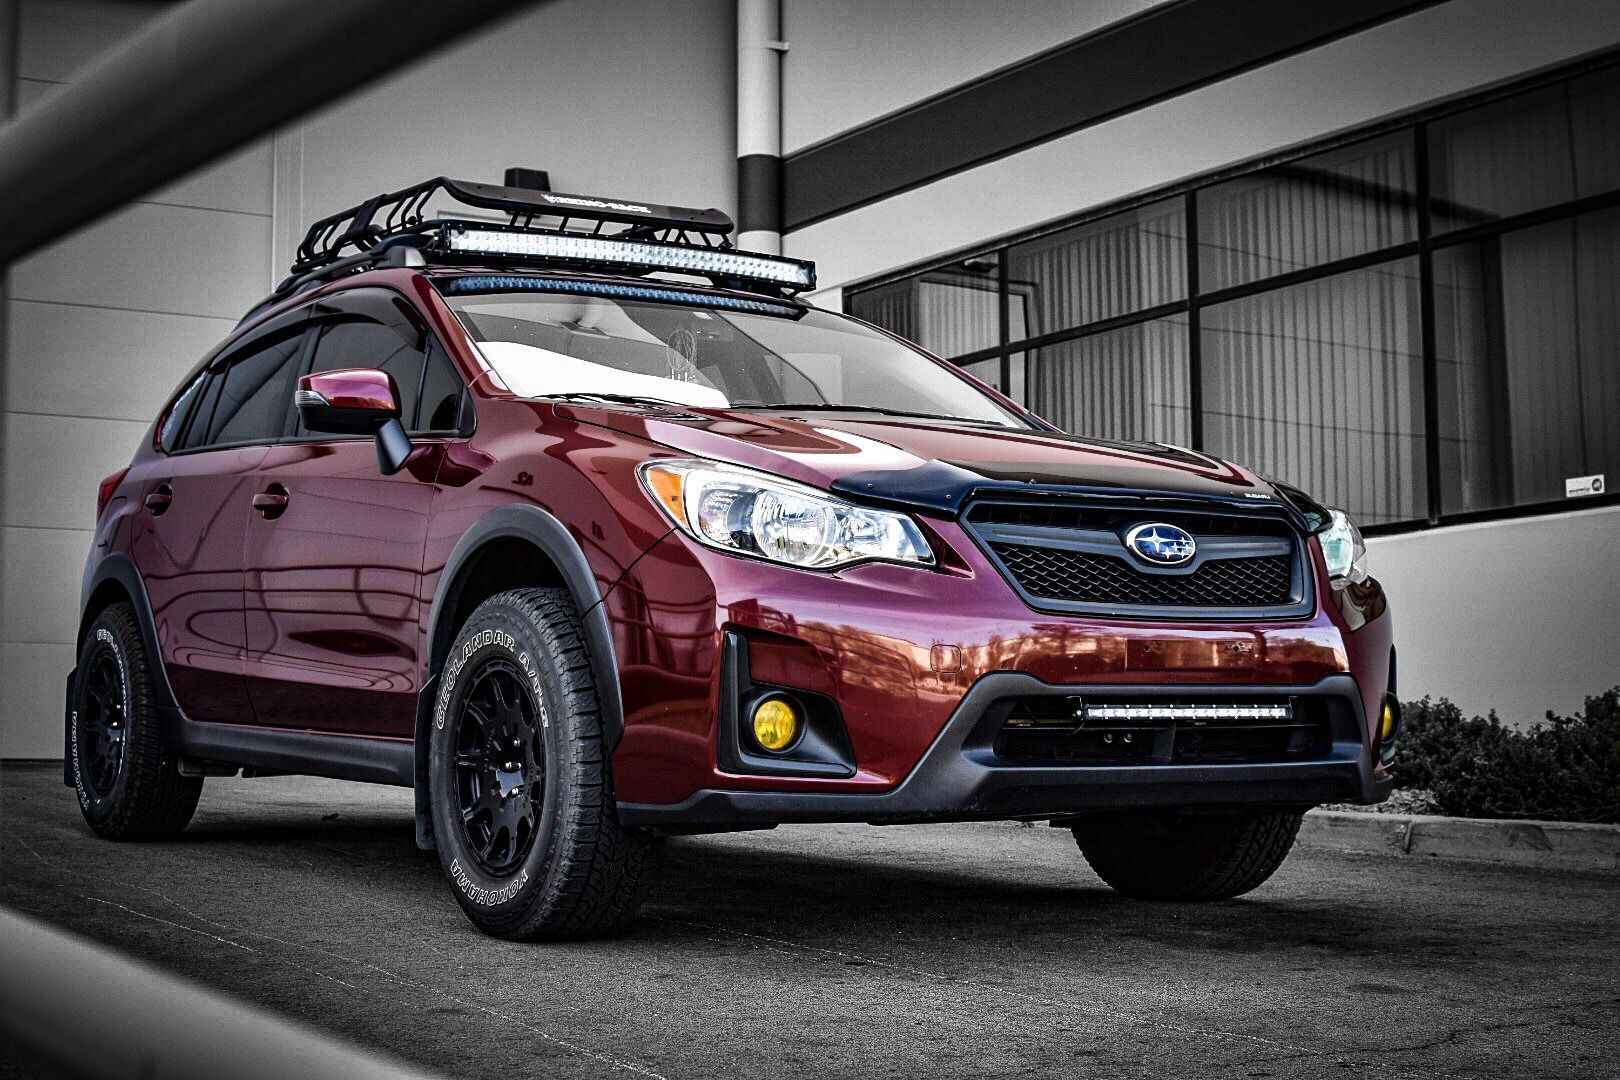 Pin By Luis De Jesus On Subaru Xv Crosstrek Subaru Crosstrek Subaru Justy Subaru Cars